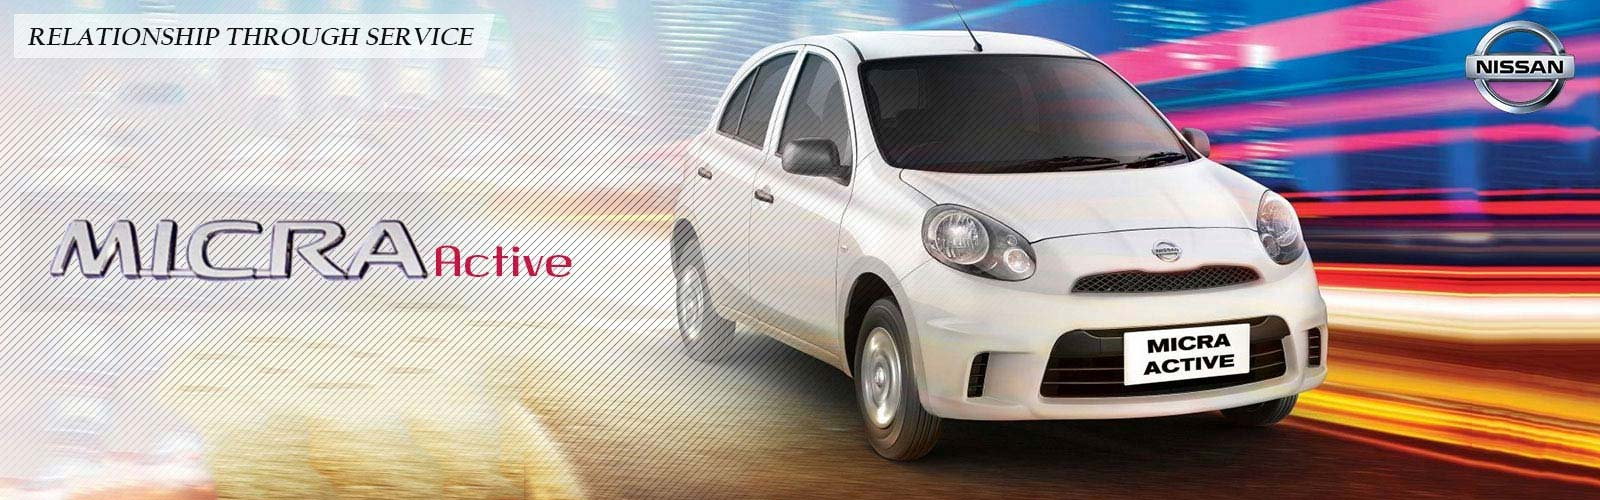 Nissan, Datsun dealers and showrooms in Ludhiana ...